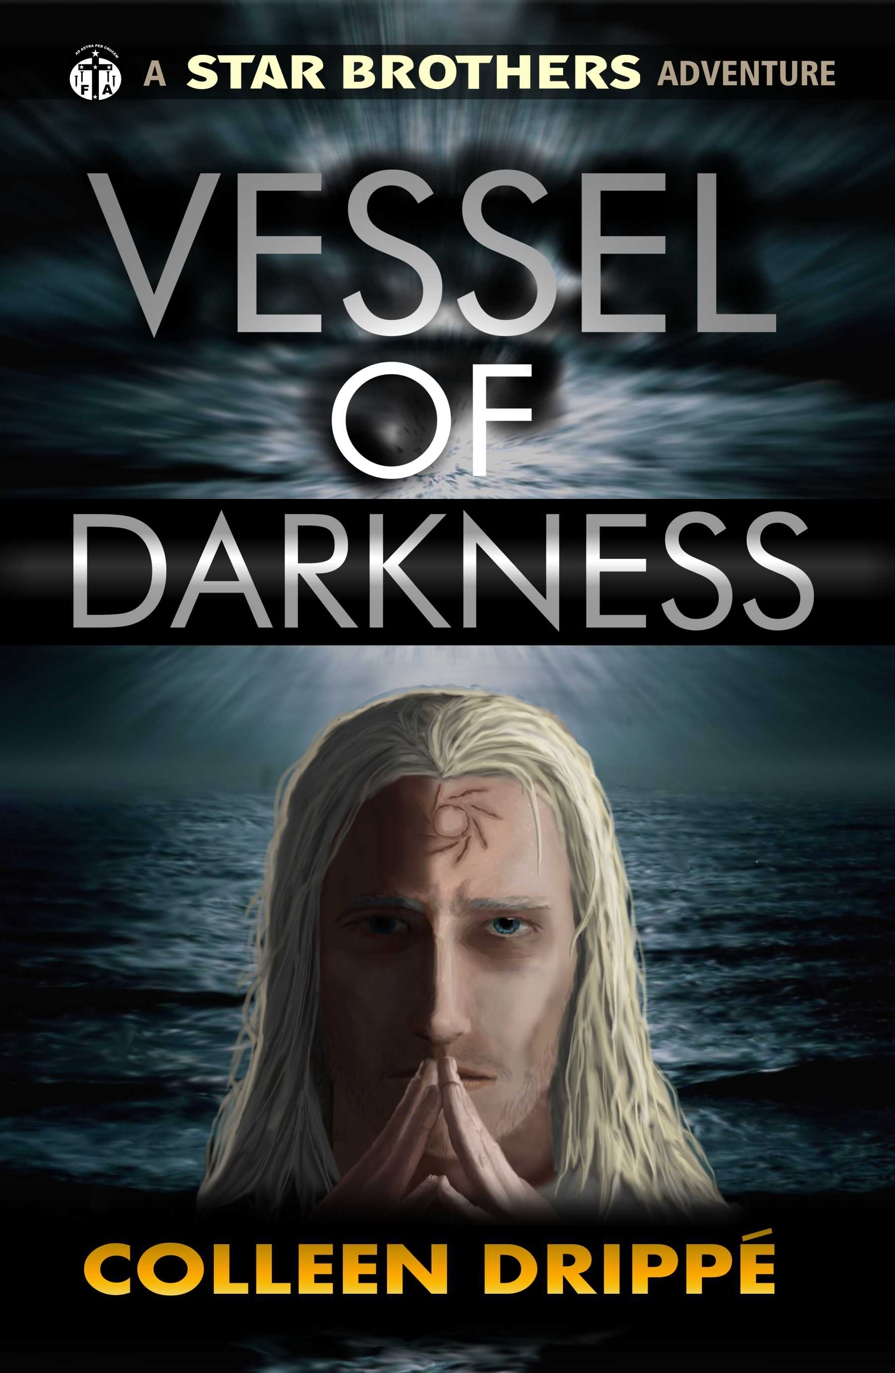 Vessel of Darkness